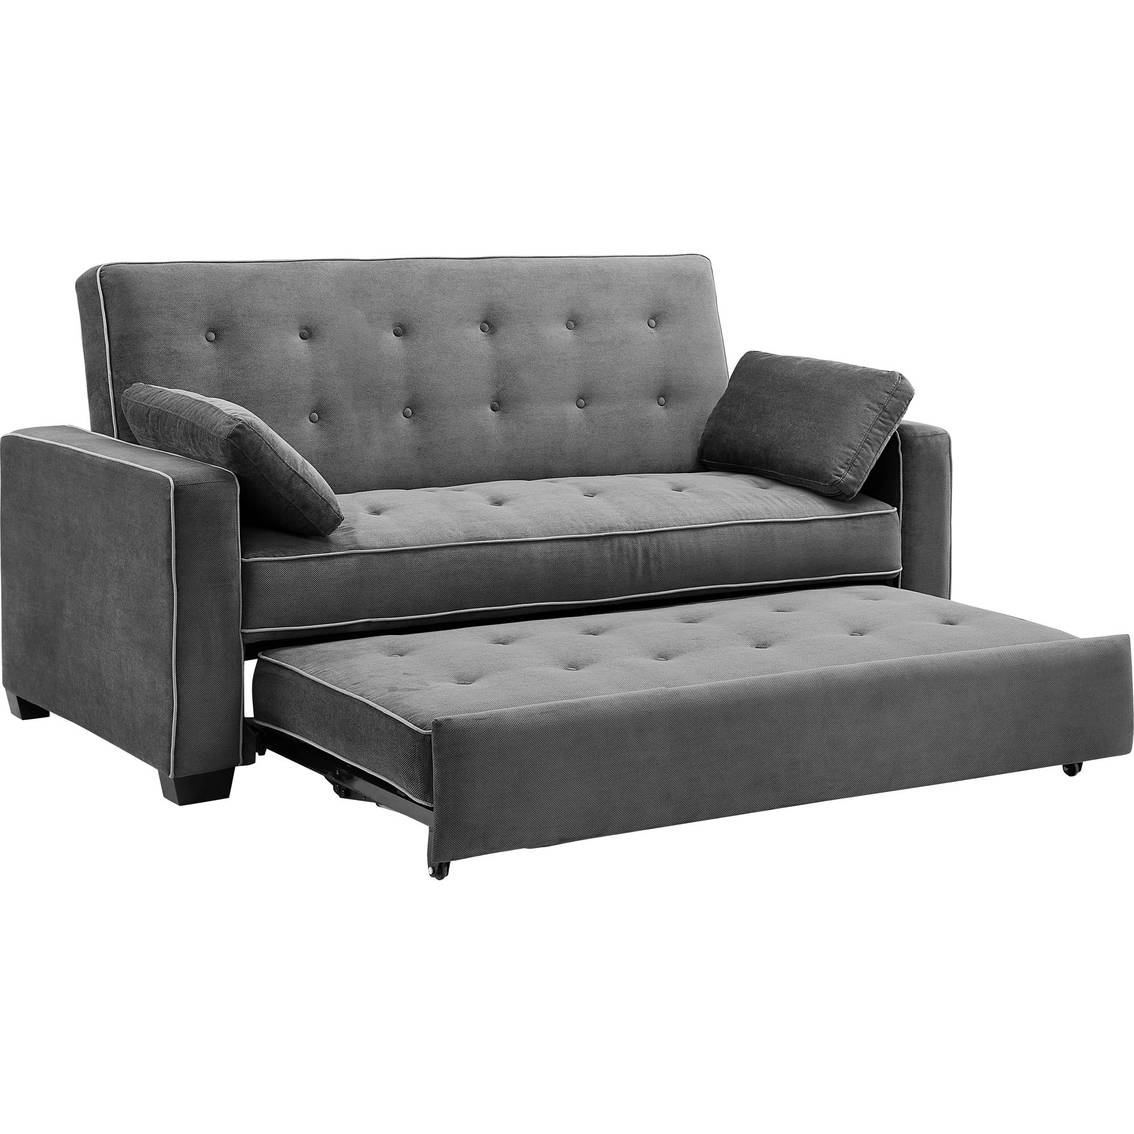 Serta Augustine Convertible Queen-Size Sleeper Sofa | Serta in Queen Size Convertible Sofa Beds (Image 9 of 15)